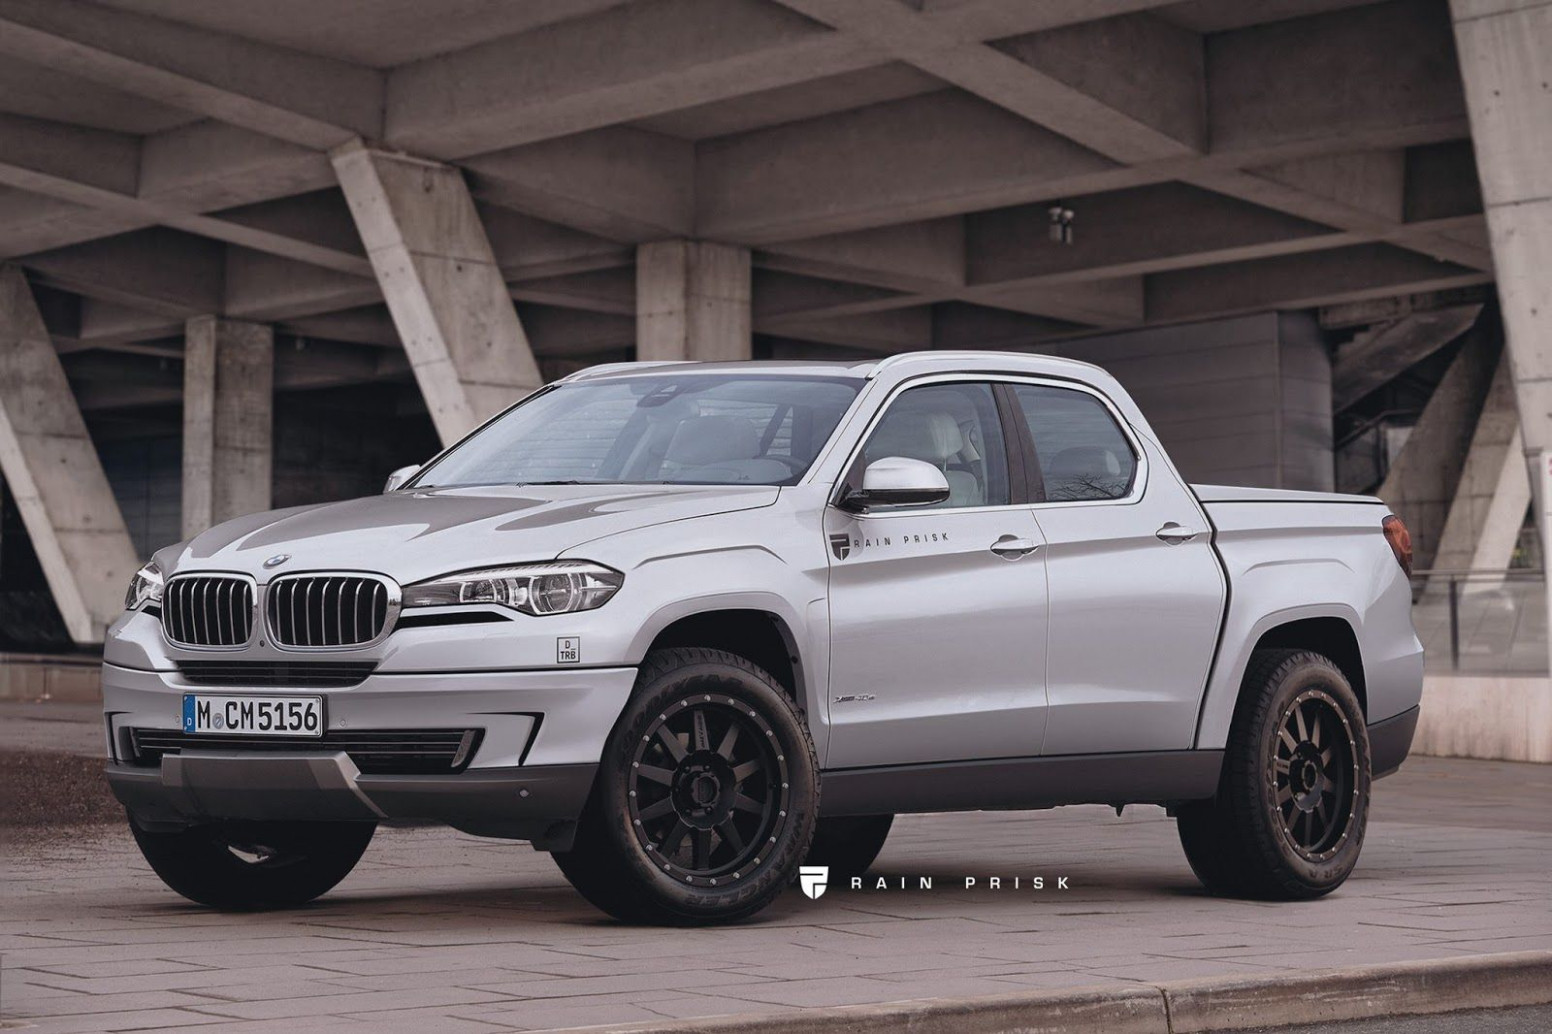 This BMW Pickup Truck Rival To The Mercedes-Benz X-Class Could Be ..